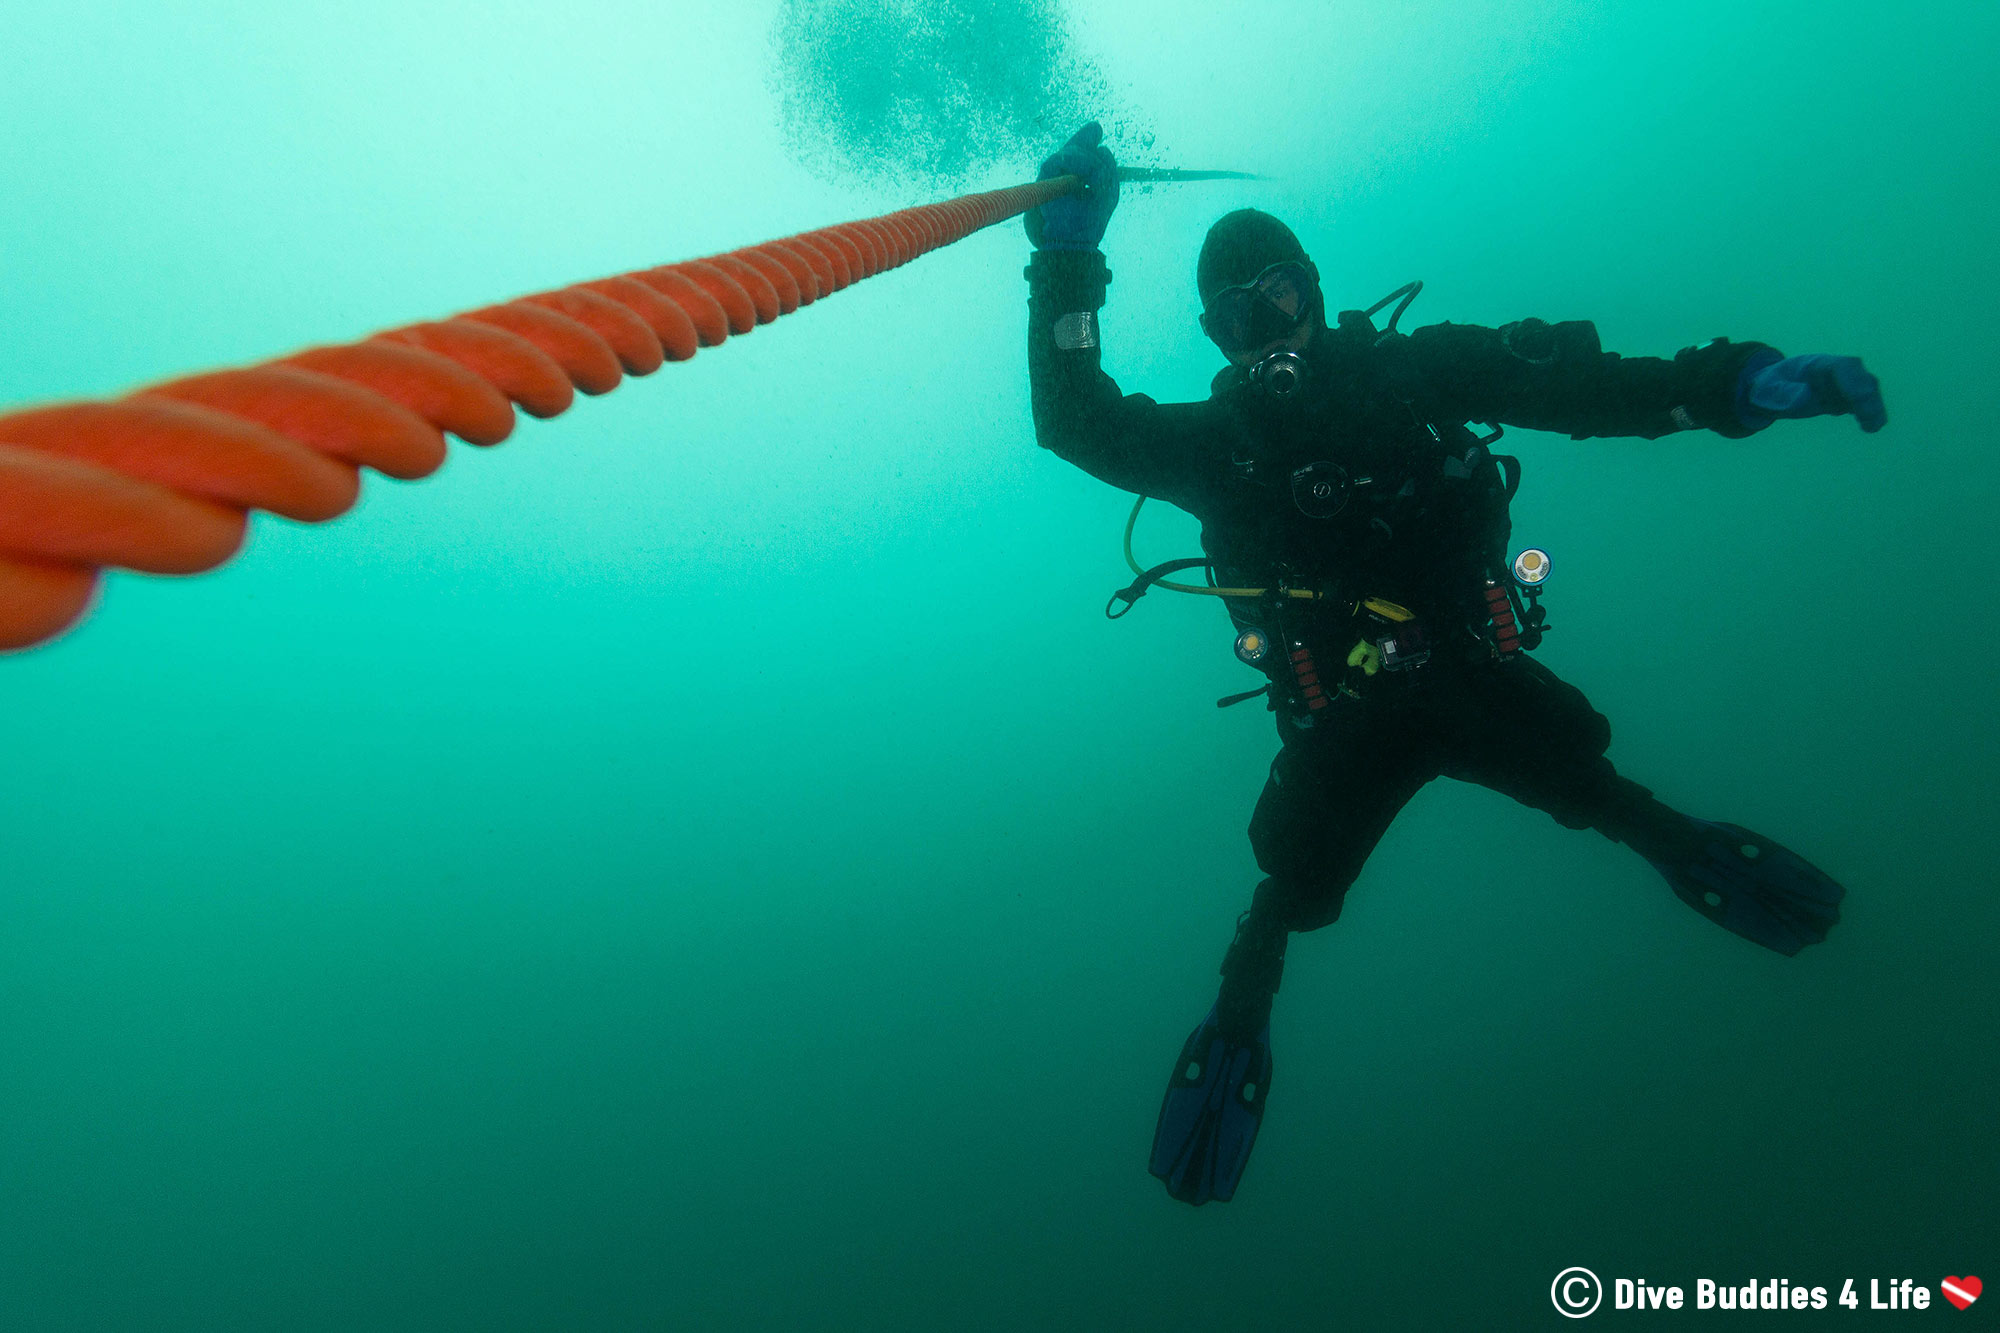 Joey Clinging To An Anchor Line On A Scuba Diving Safety Stop In Europe